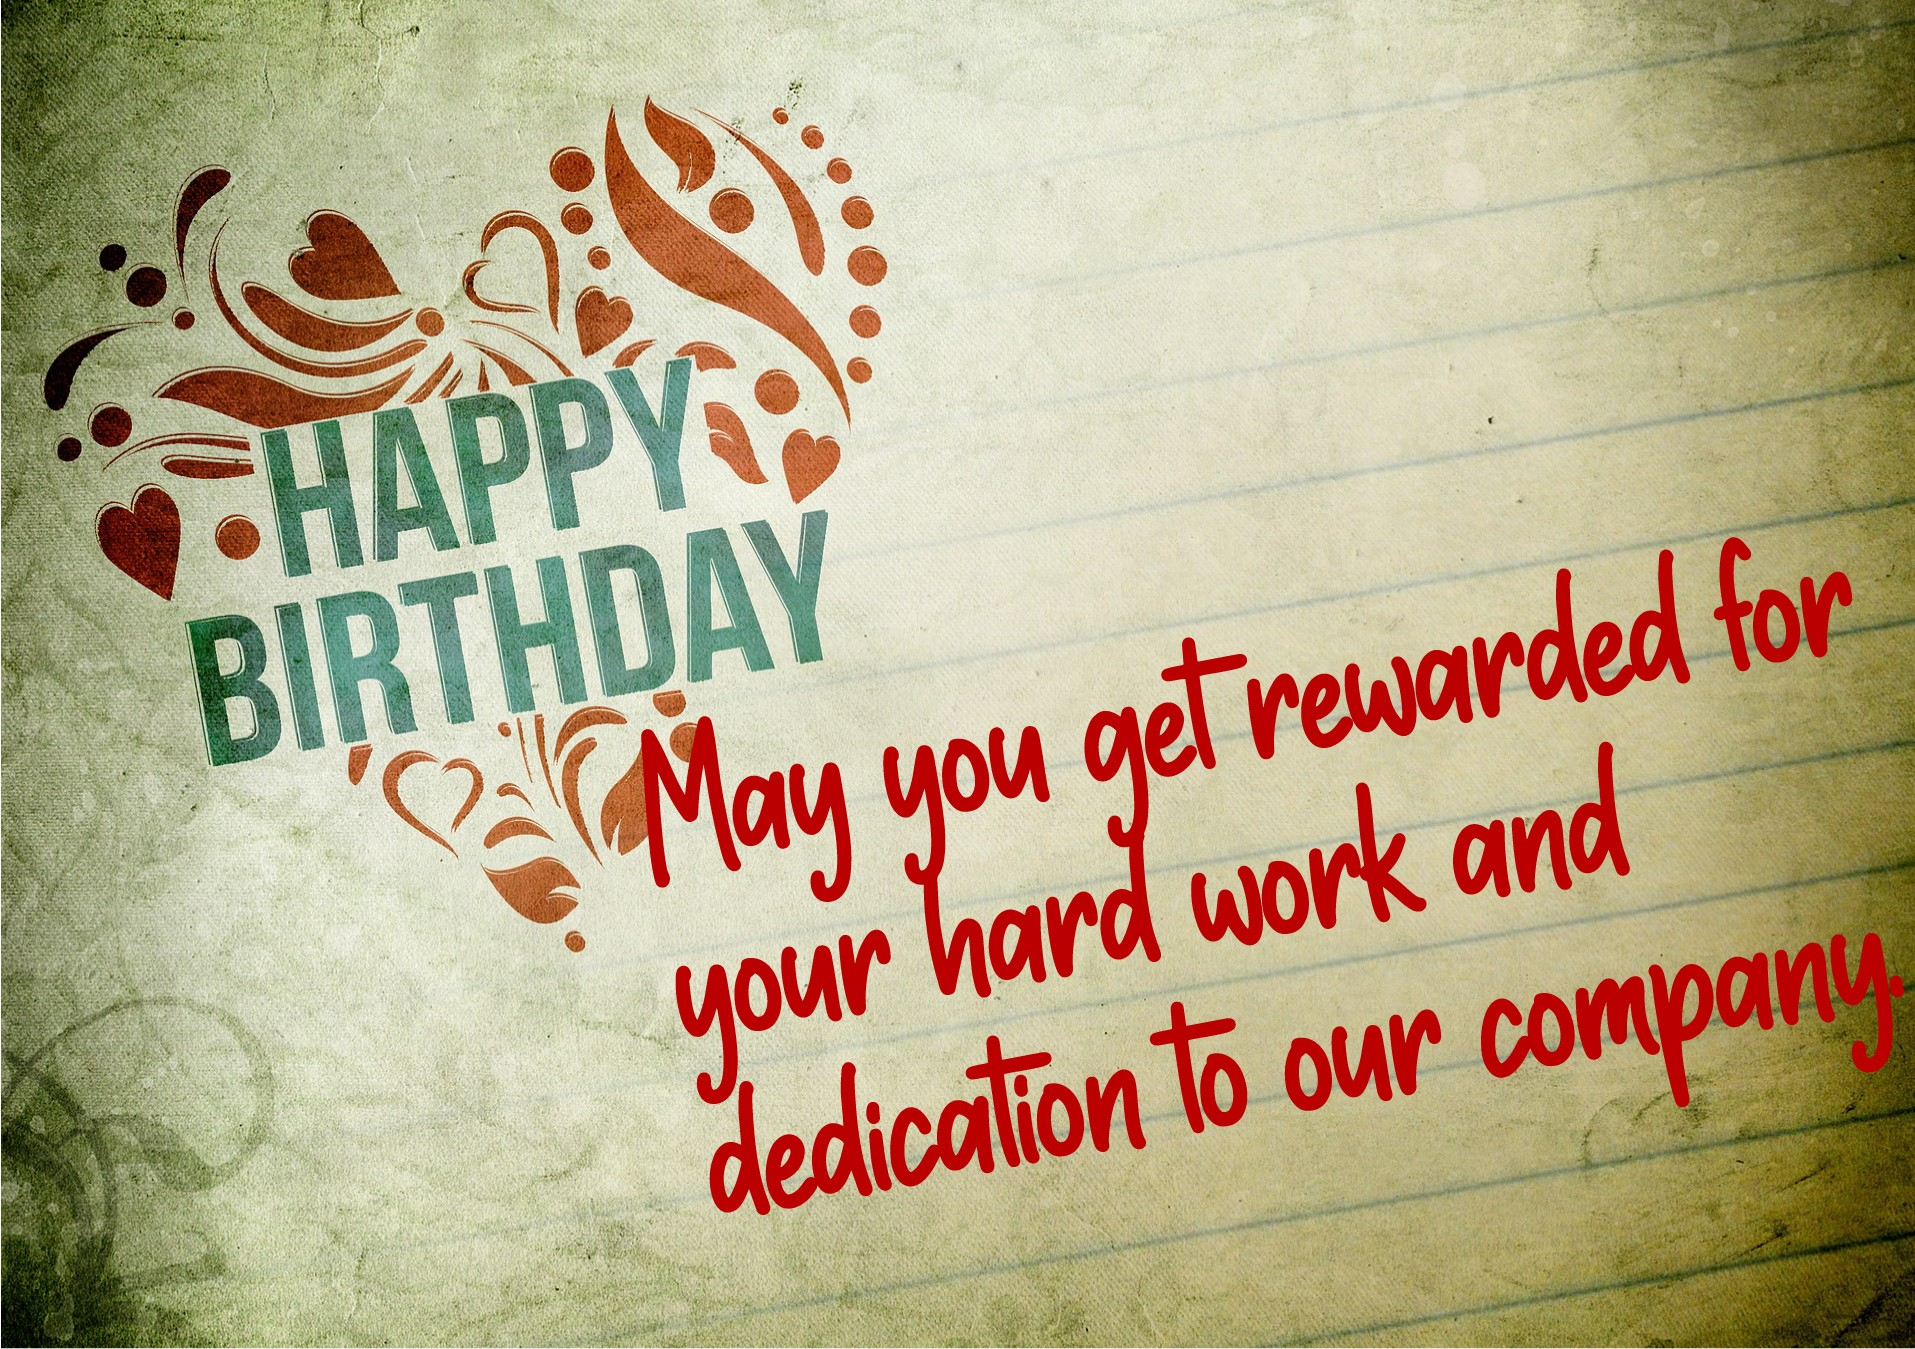 Best birthday wishes for a senior colleague